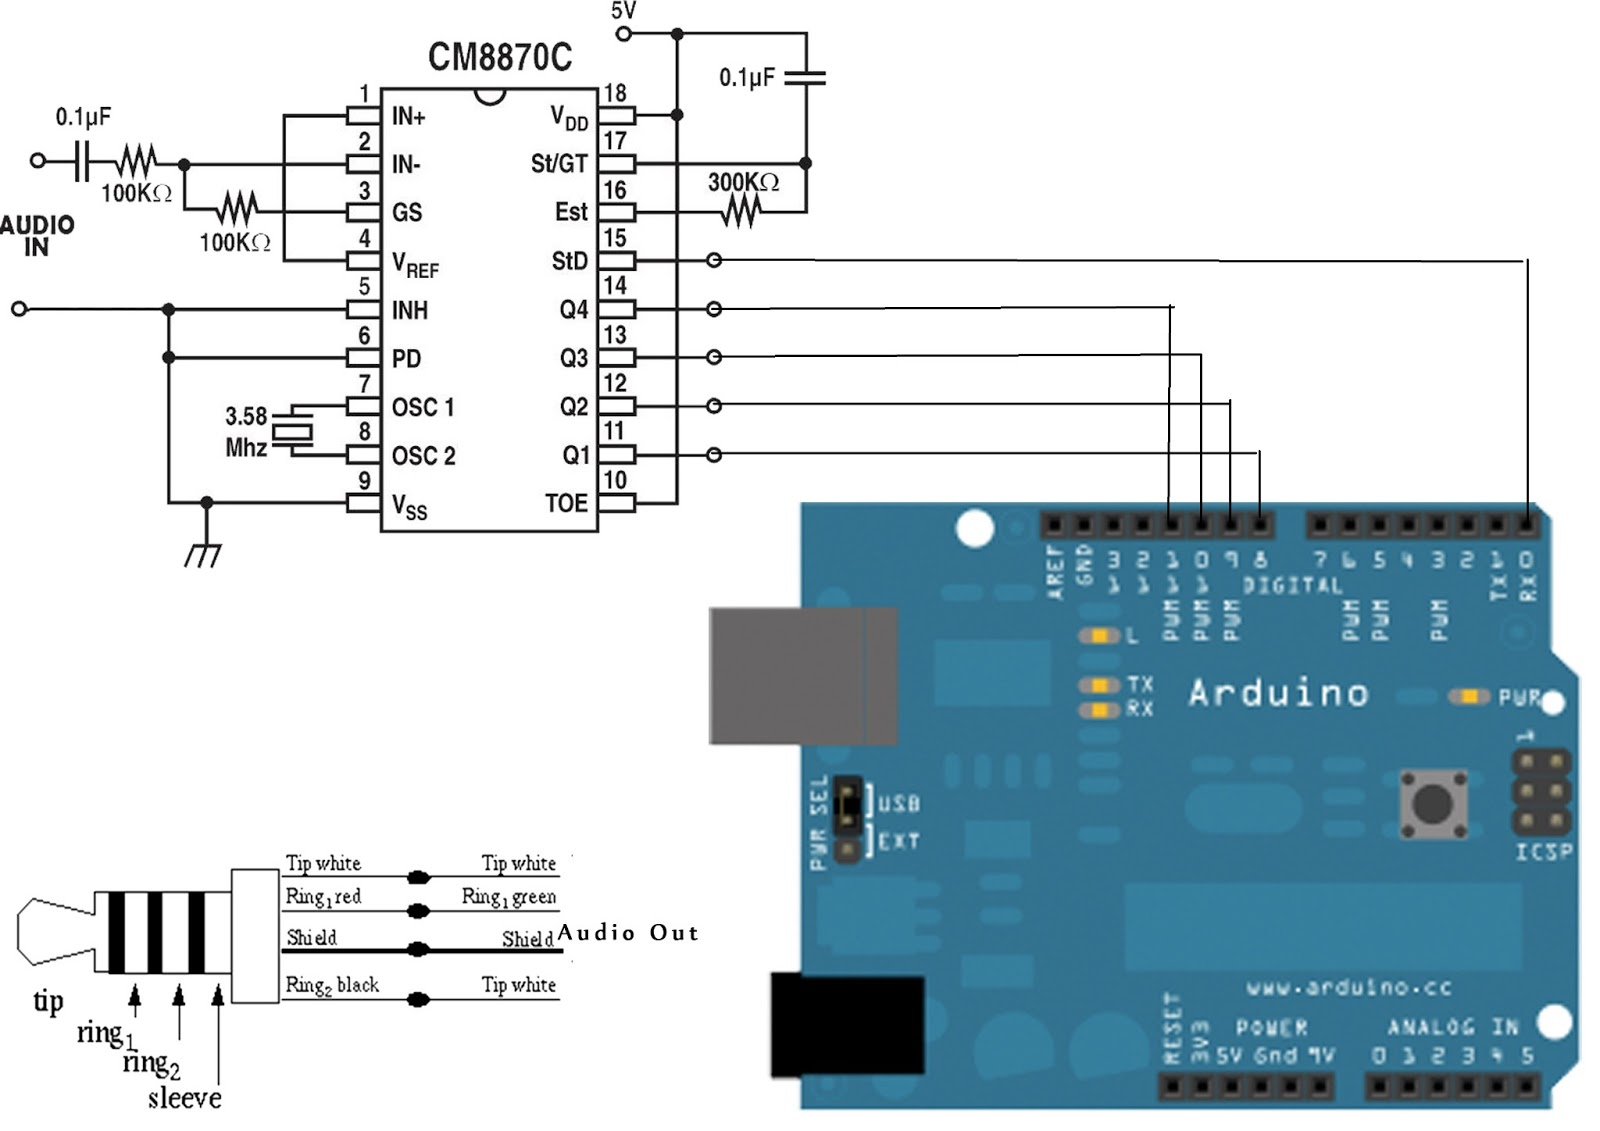 Dtmf Decoder Ic Mt8870 Pin Diagram Peugeot 306 Wiring Download Let 39s Play With Arduino